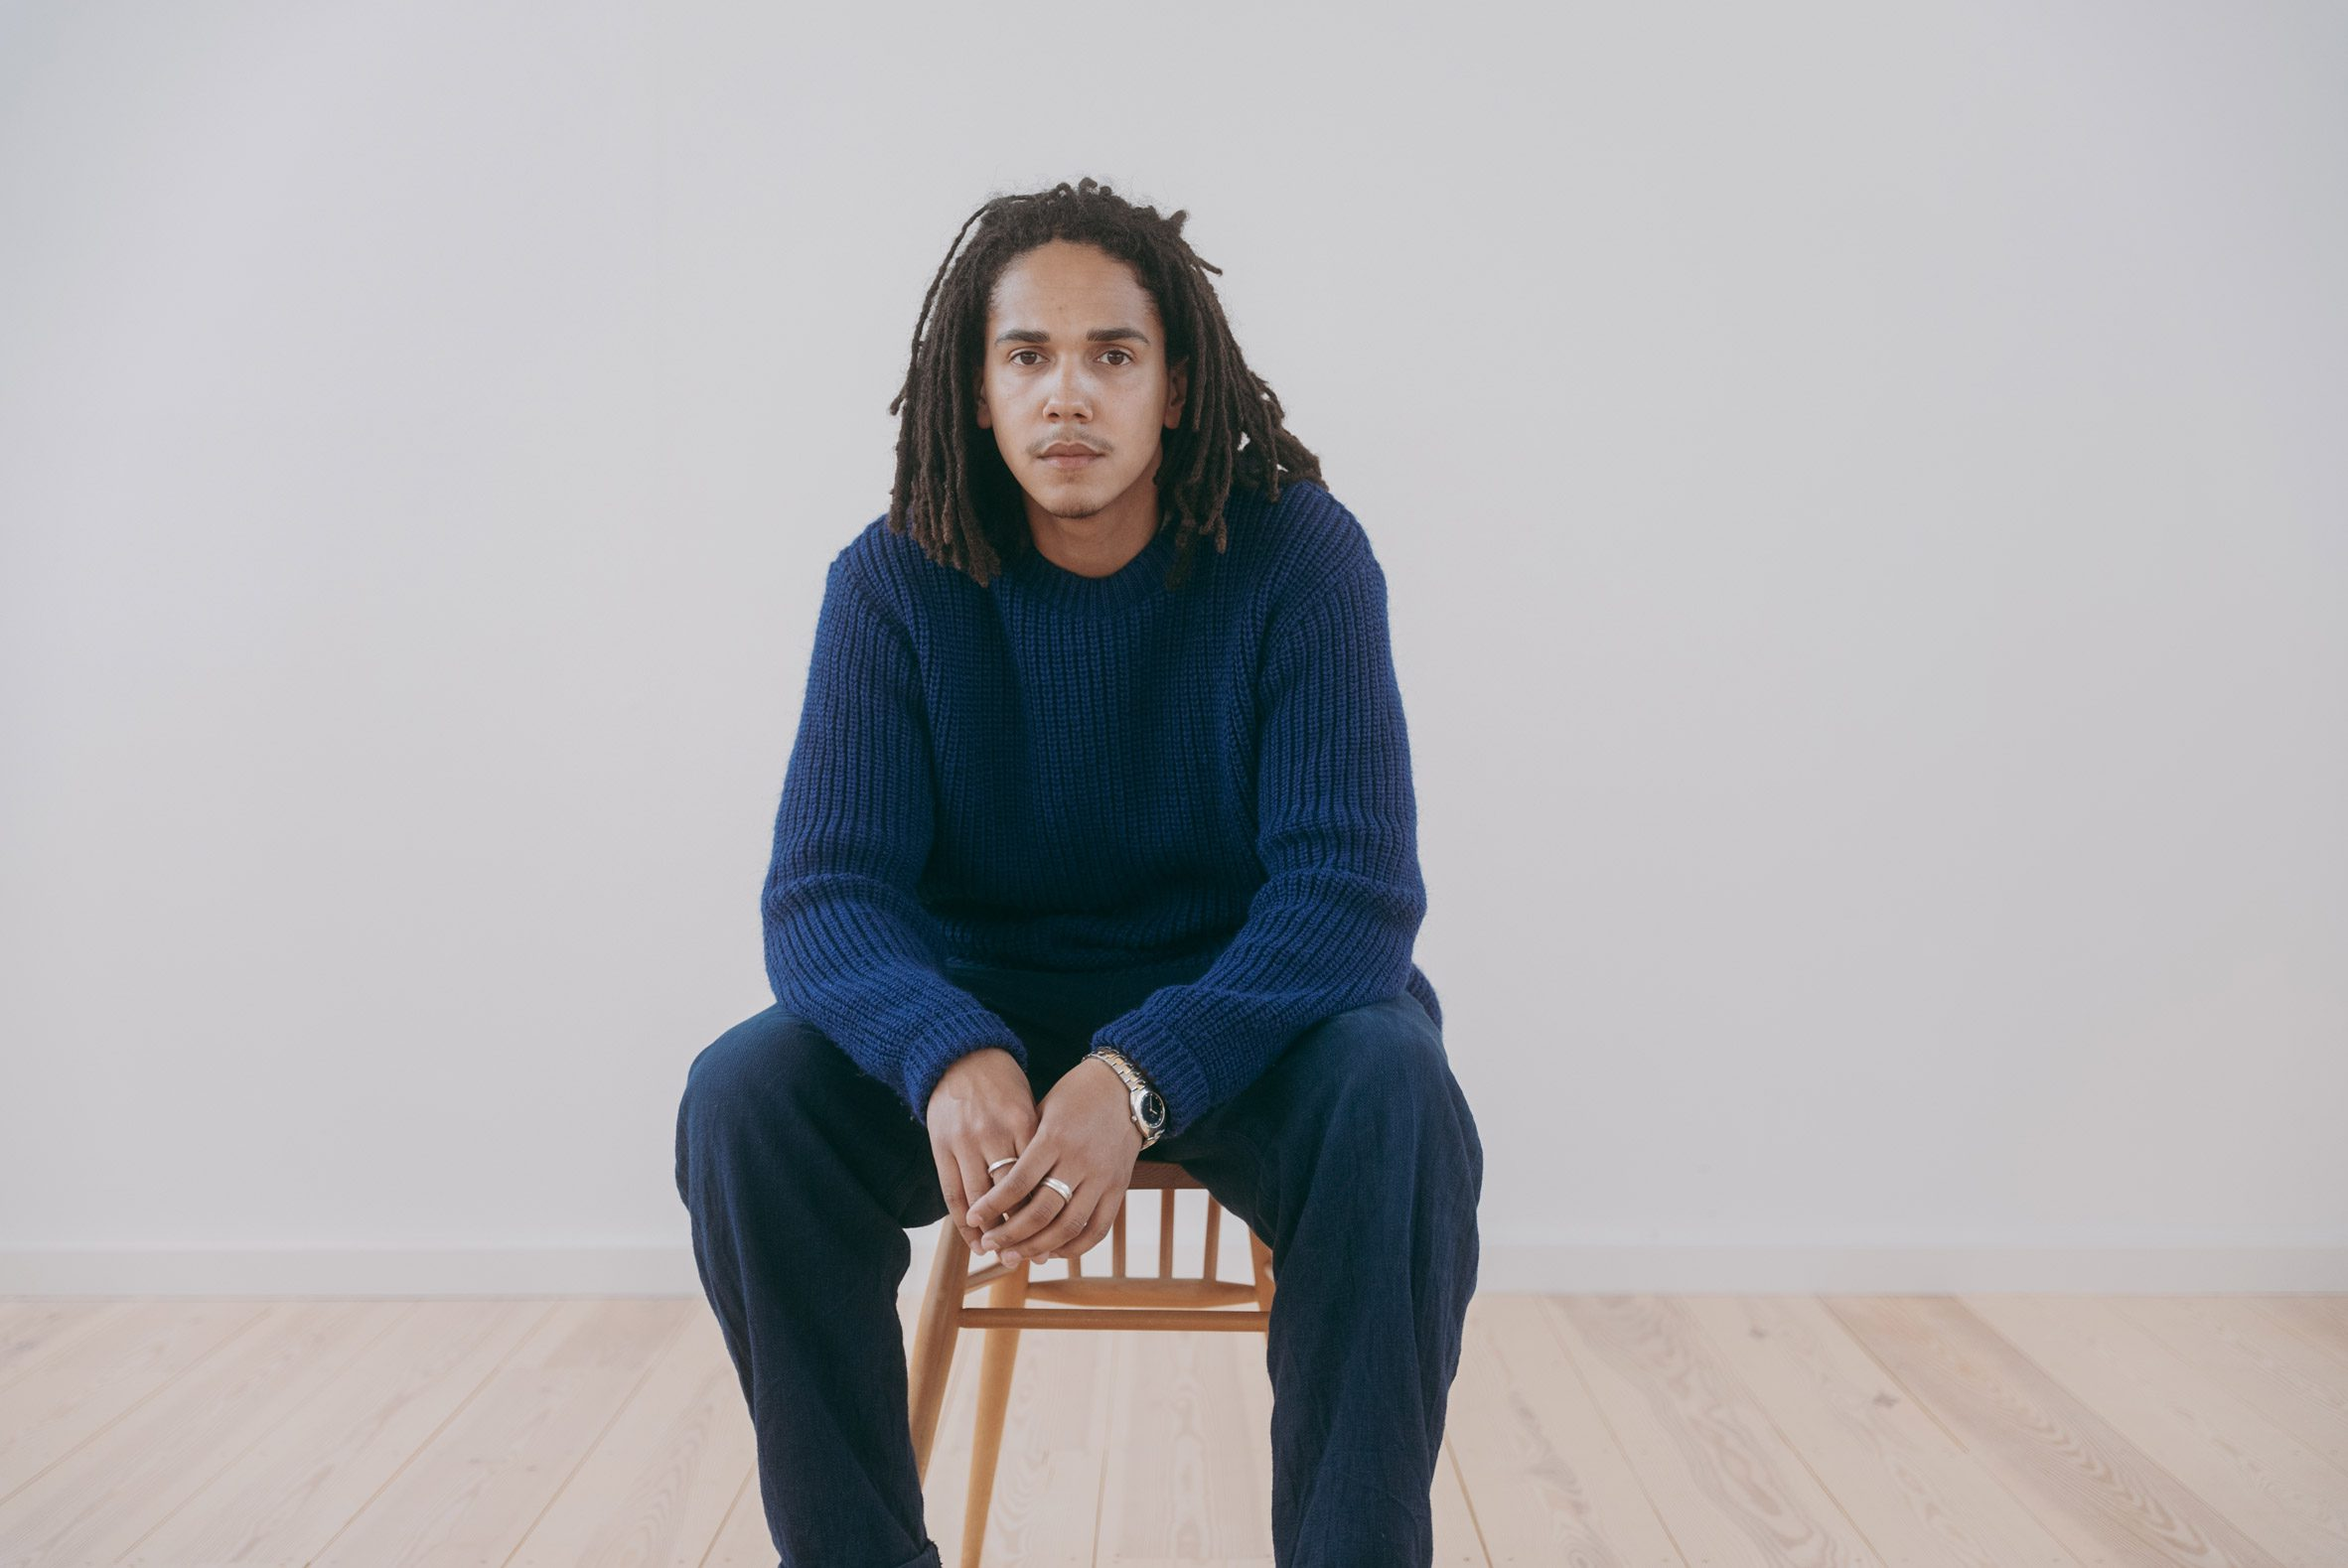 Mac Collins sitting on a wooden chair